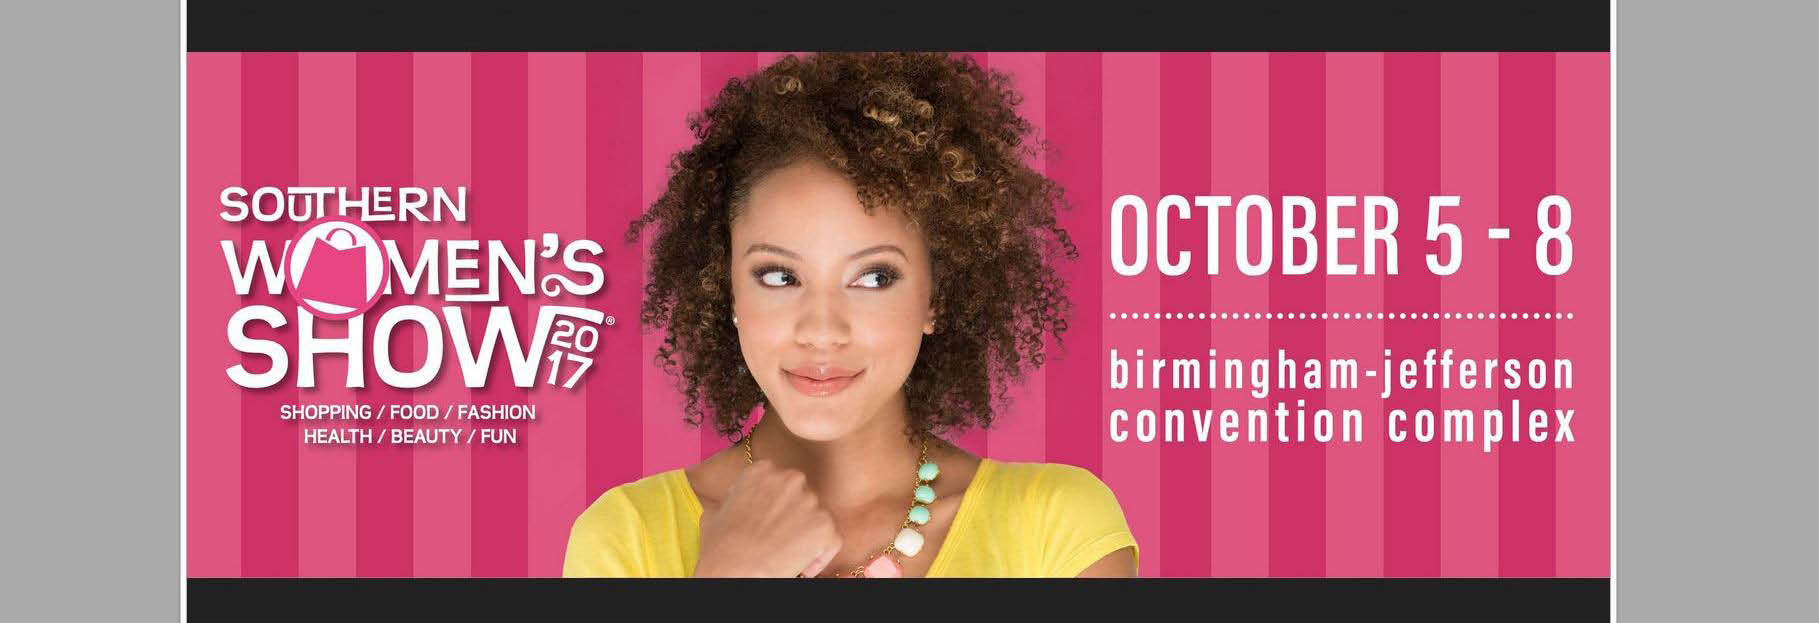 southern womens show discount tickets, birmingham, promo code, coupon, savings, clipper, groupon